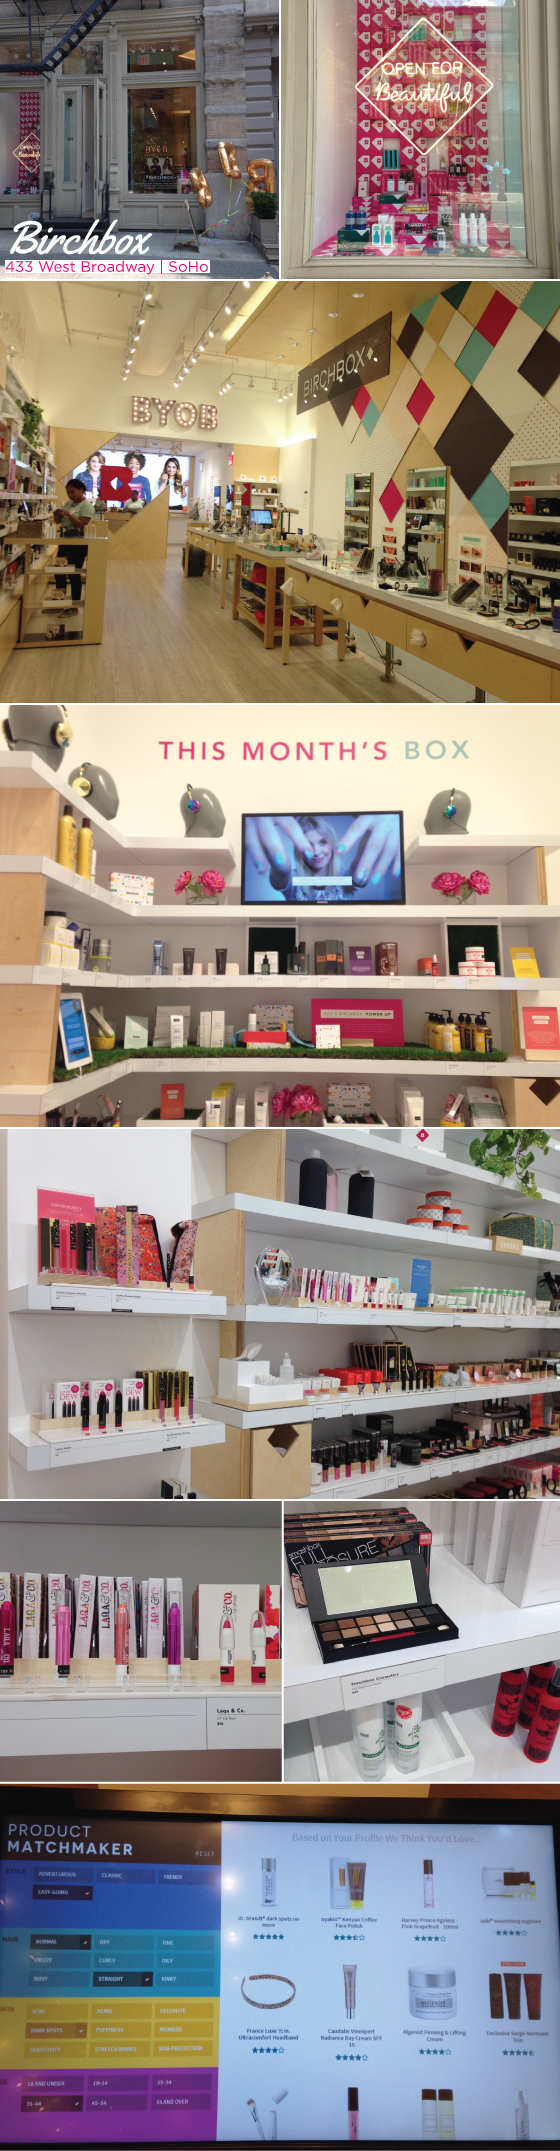 birchbox-loja-soho-ny-new-york-nova-york-caixa-produtos-beleza-beauty-store-dicas-make-cosmeticos-travel-viagem-onde-ir-diferente-cool-produtos-salao-montar-do-it-yourself